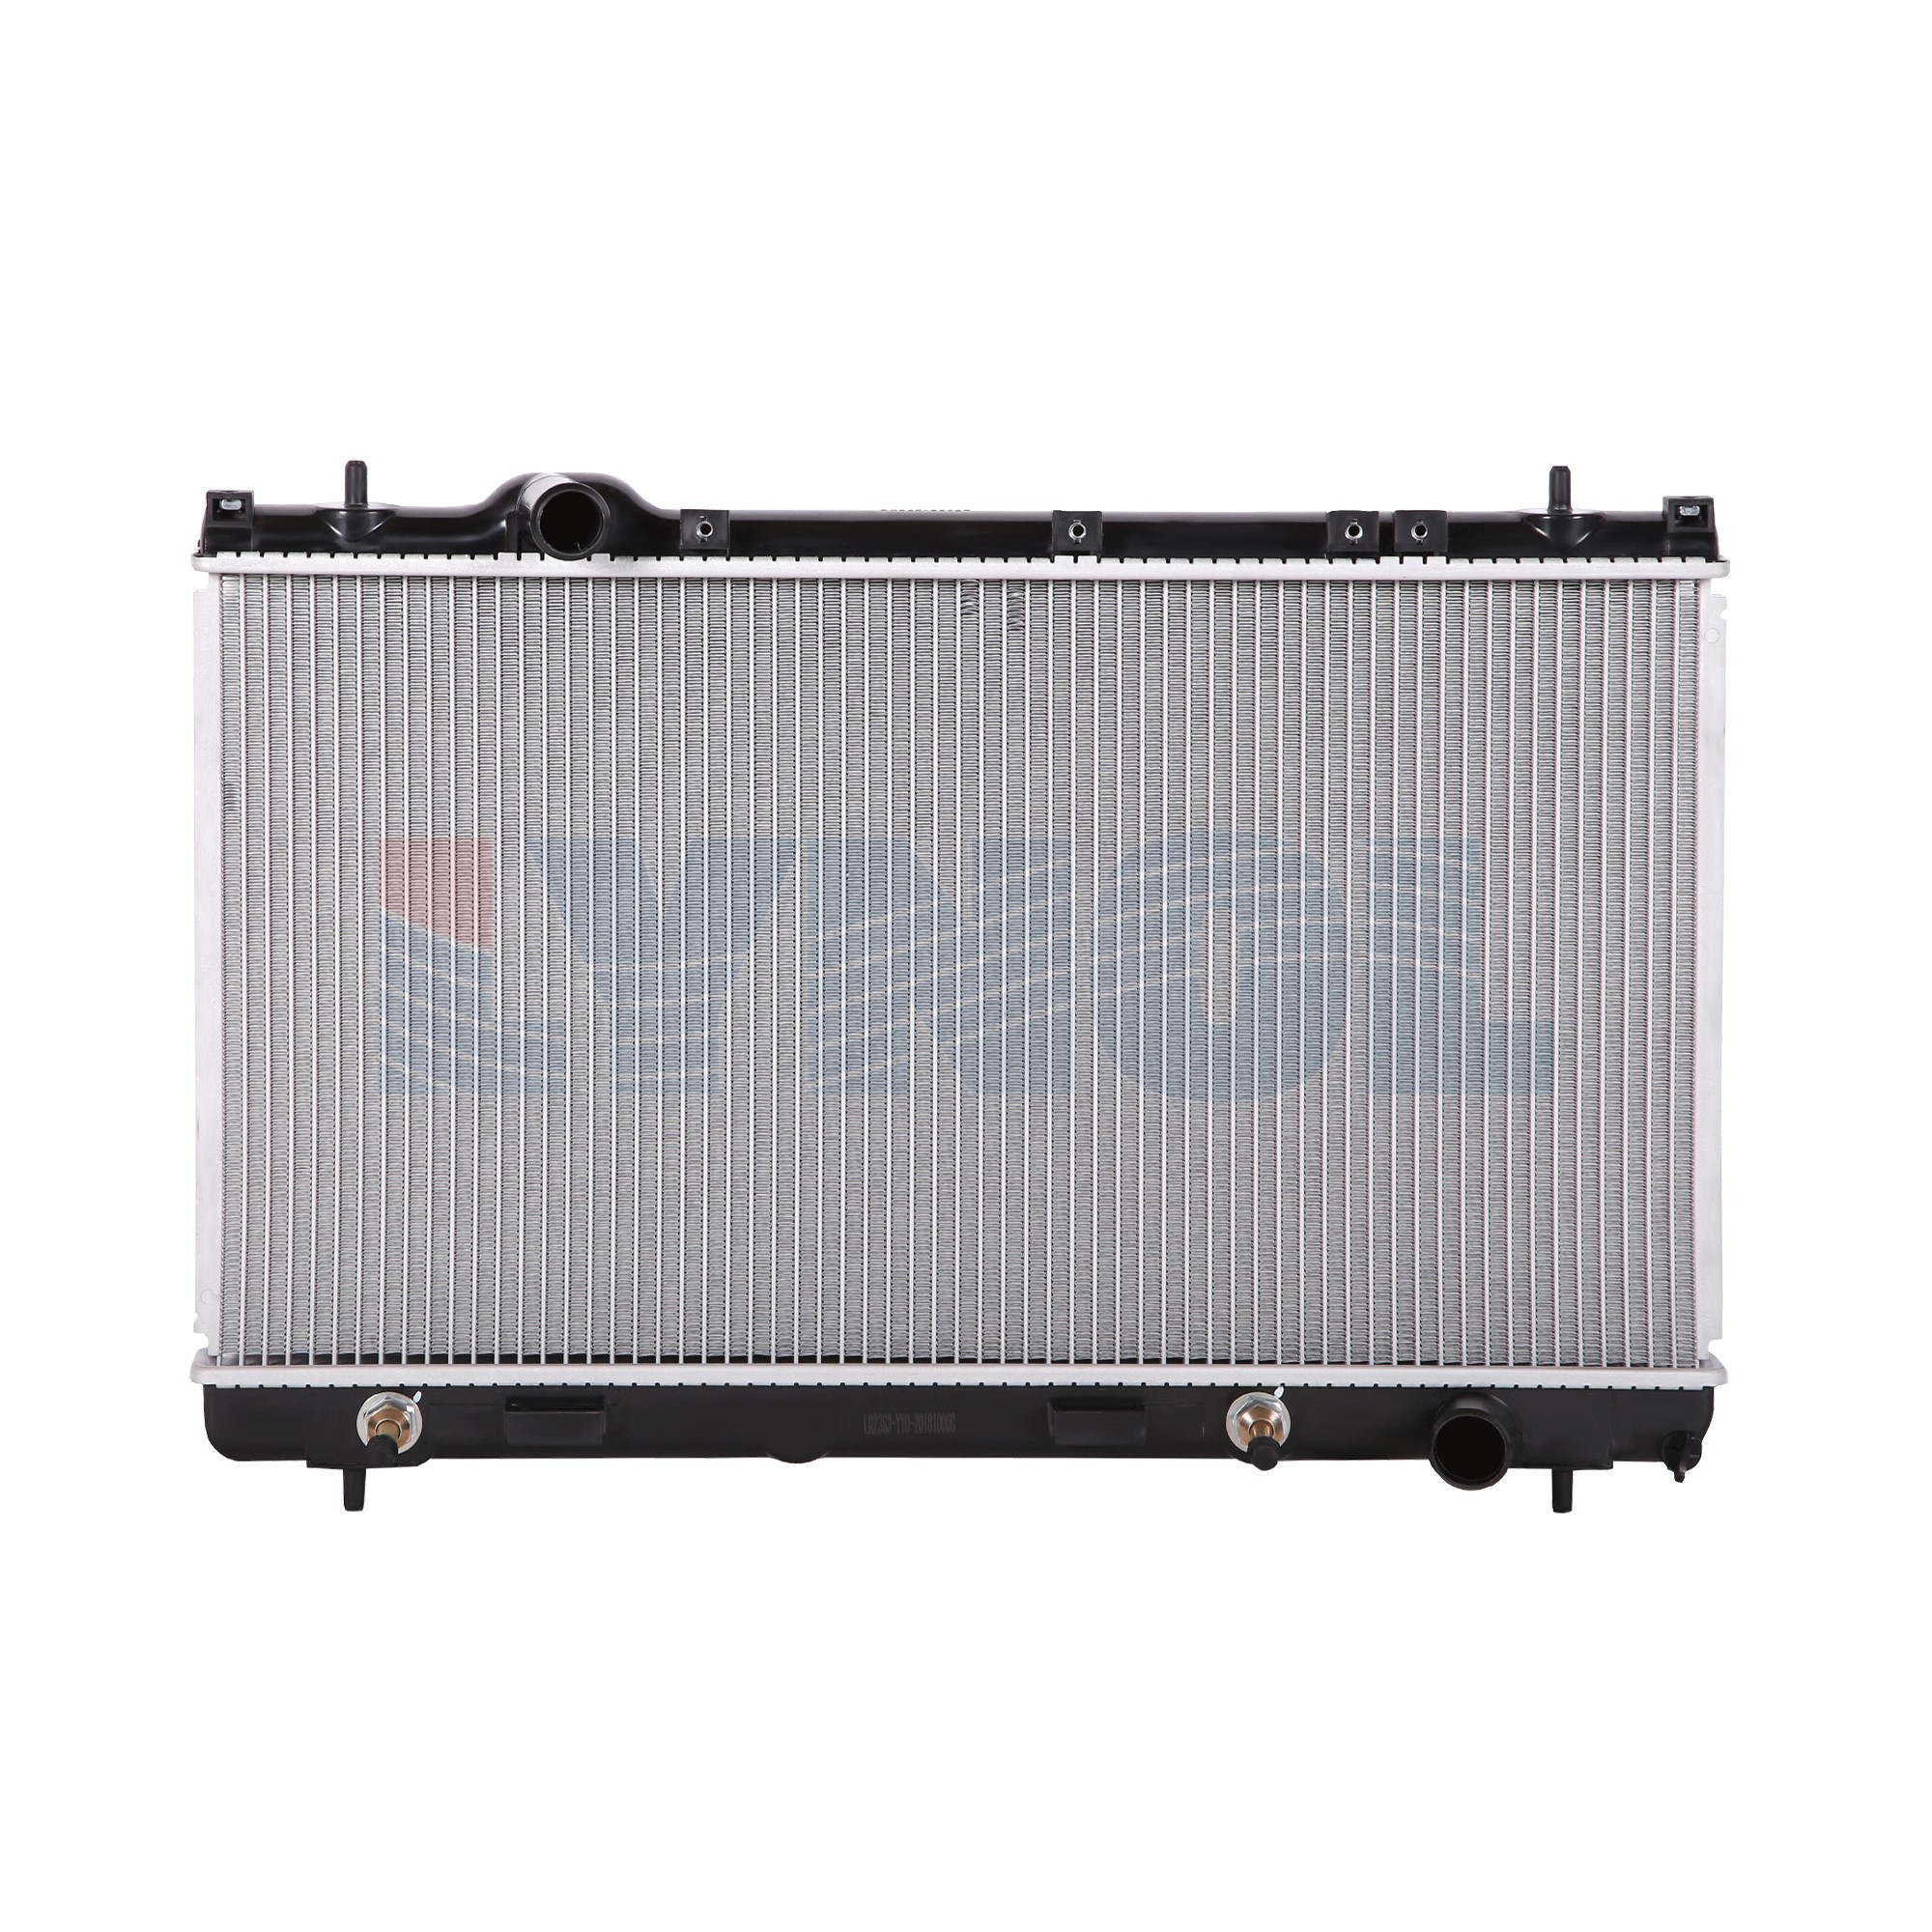 LR2363 - RADIATOR  - 00-02 Chrysler Neon / Dodge Neon, 2.0L l4